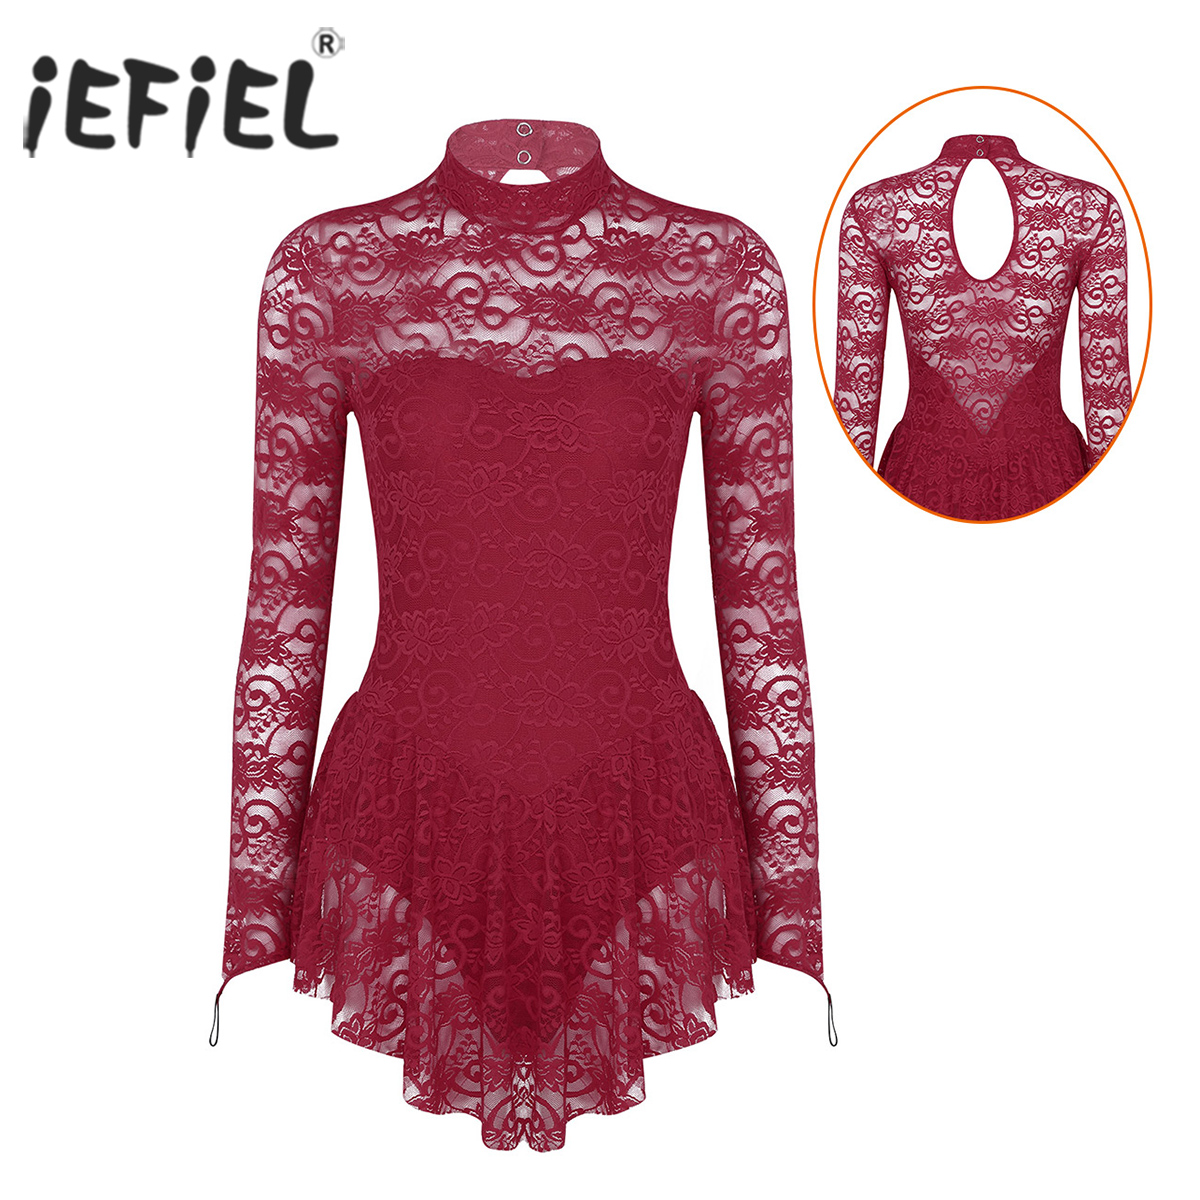 Women Adult Ballet Competition Lyrical Dancewear Costumes Lace Figure Ice Skating Roller Skating Dance Ballroom Leotard Dress